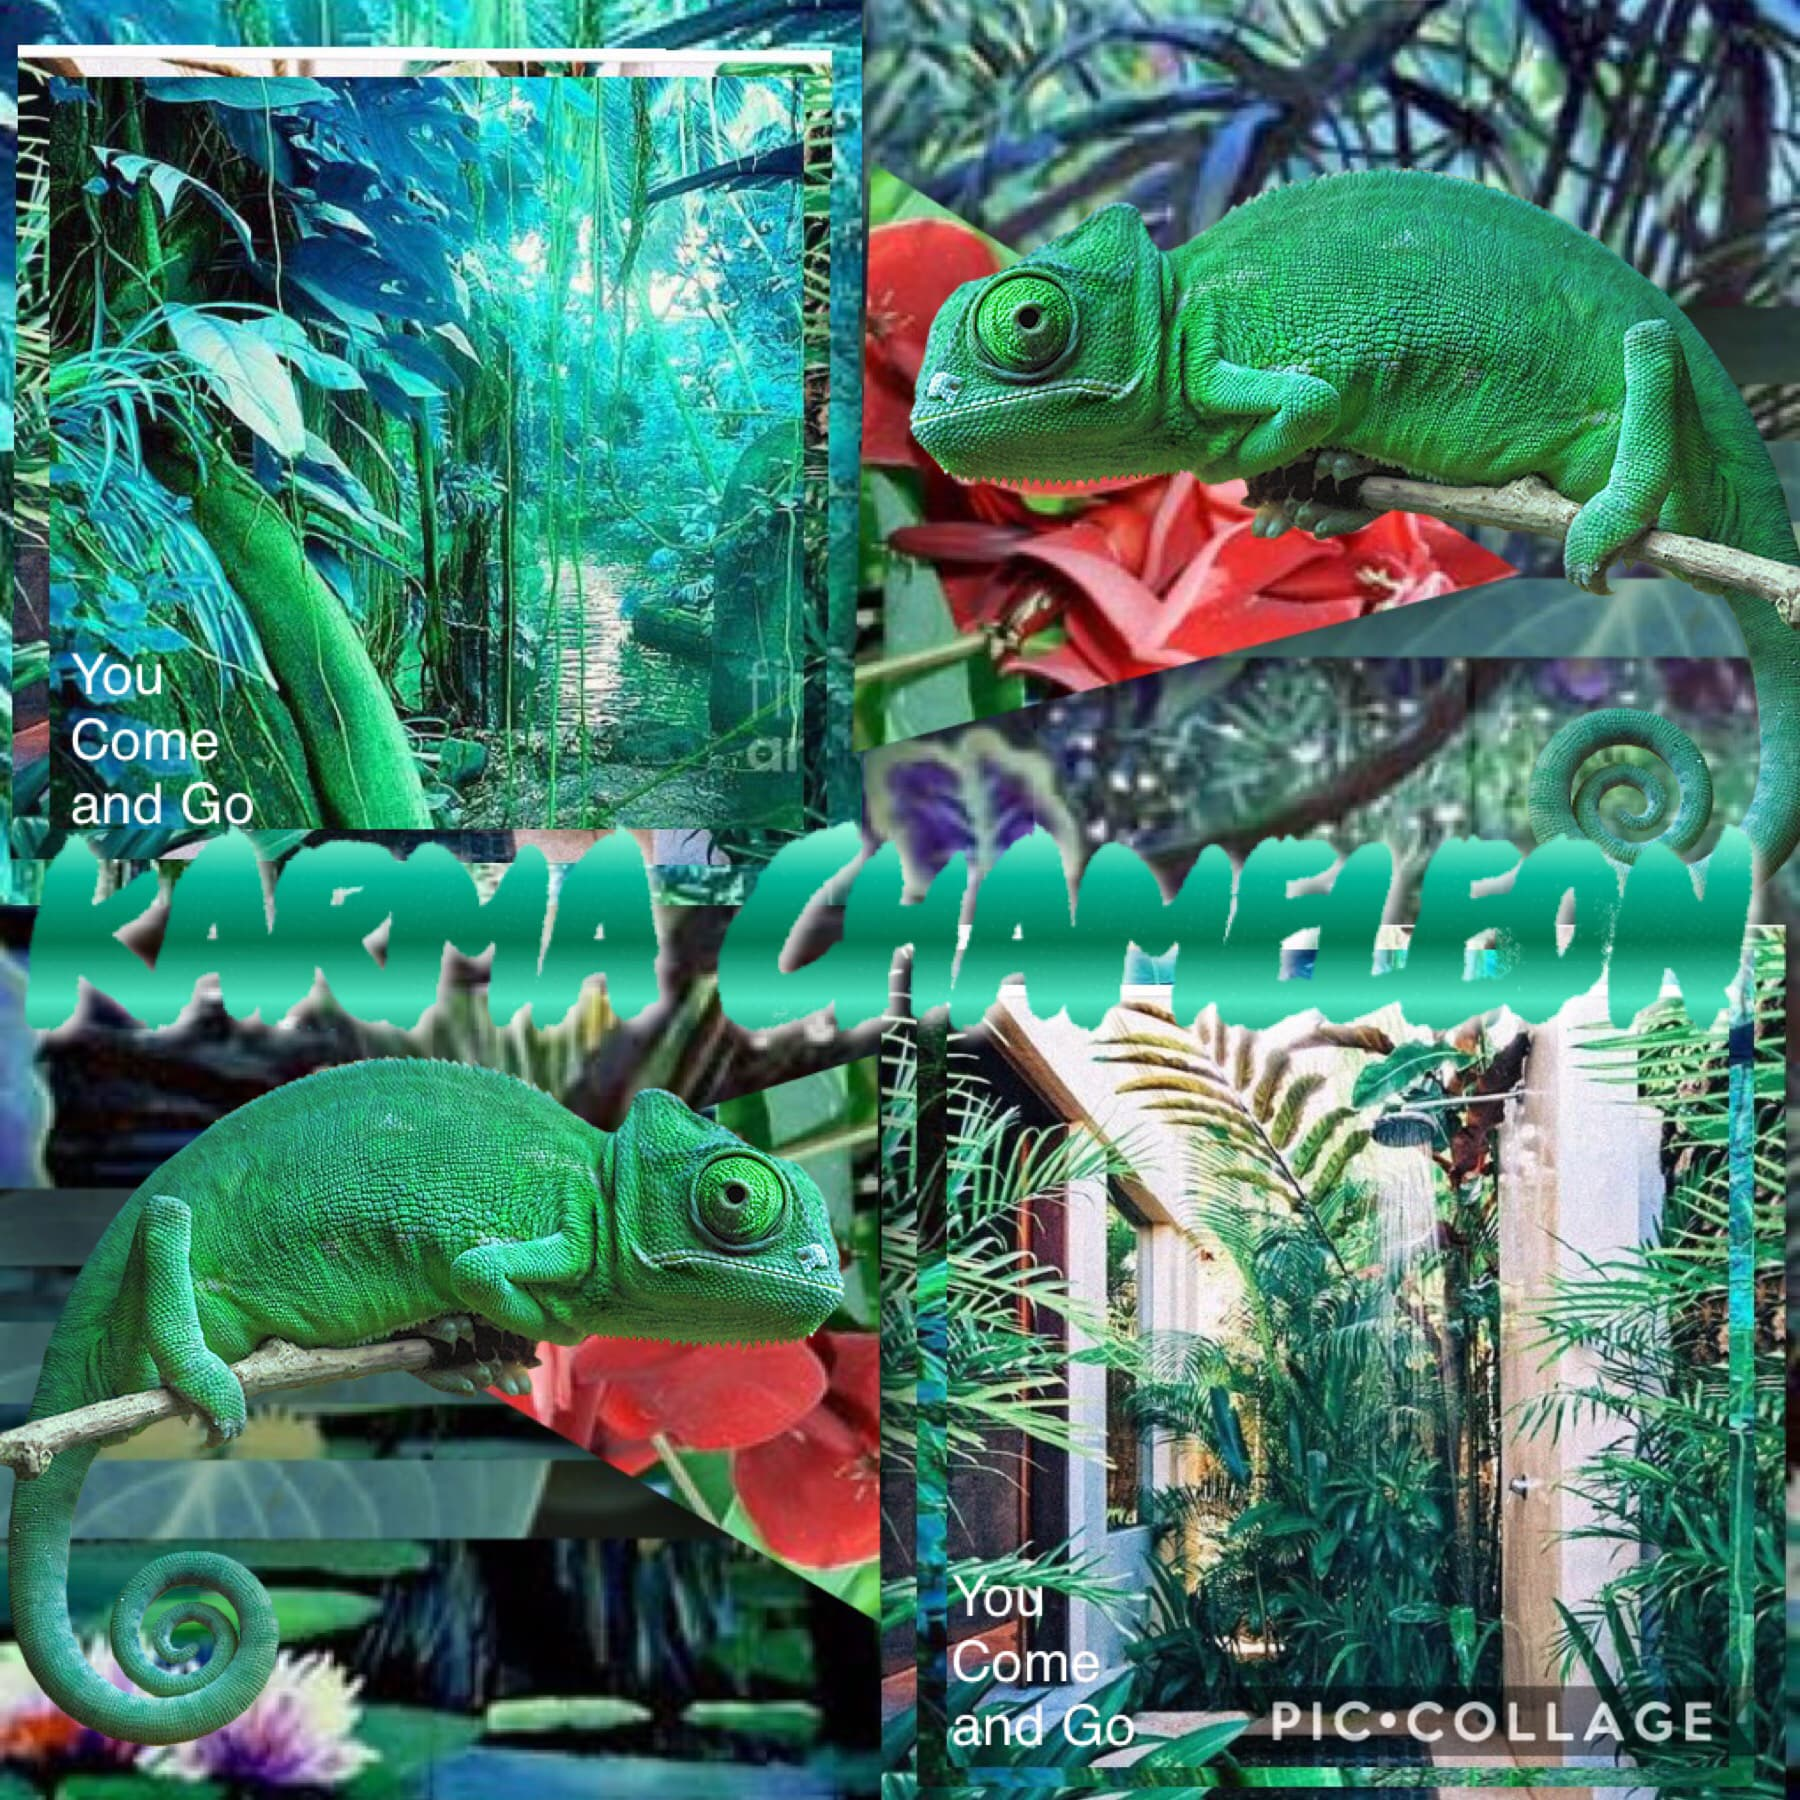 Karma Chameleon collage! 🦎  Btw, I will be posting some VERY overdue stuff soon(cause I'm bad at running this account!)!